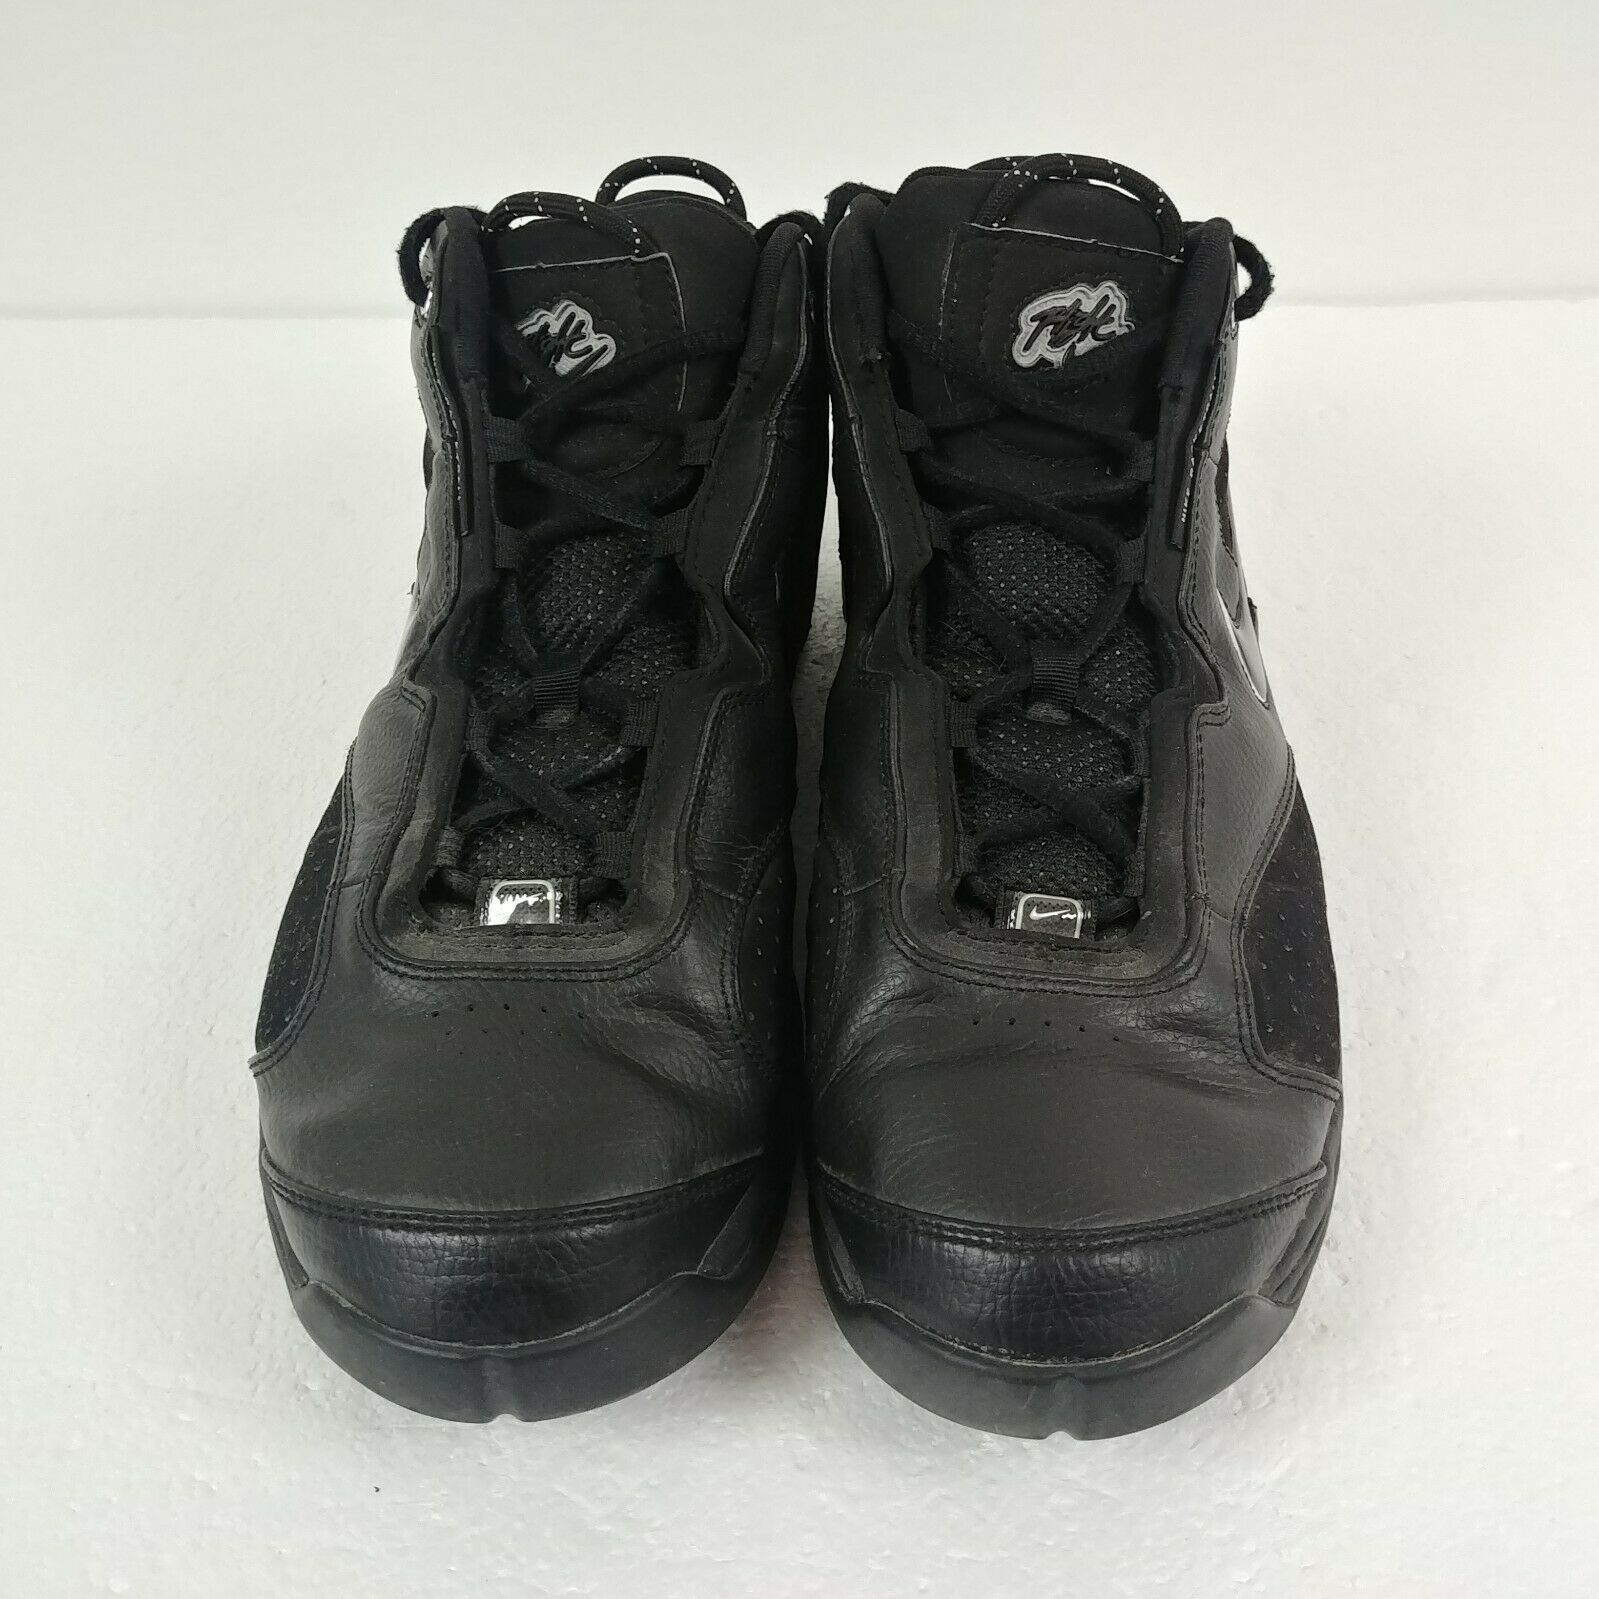 Nike Flight Fury Basketball Shoes Black 310102-001 Mens Size 13 Athletic Train image 6